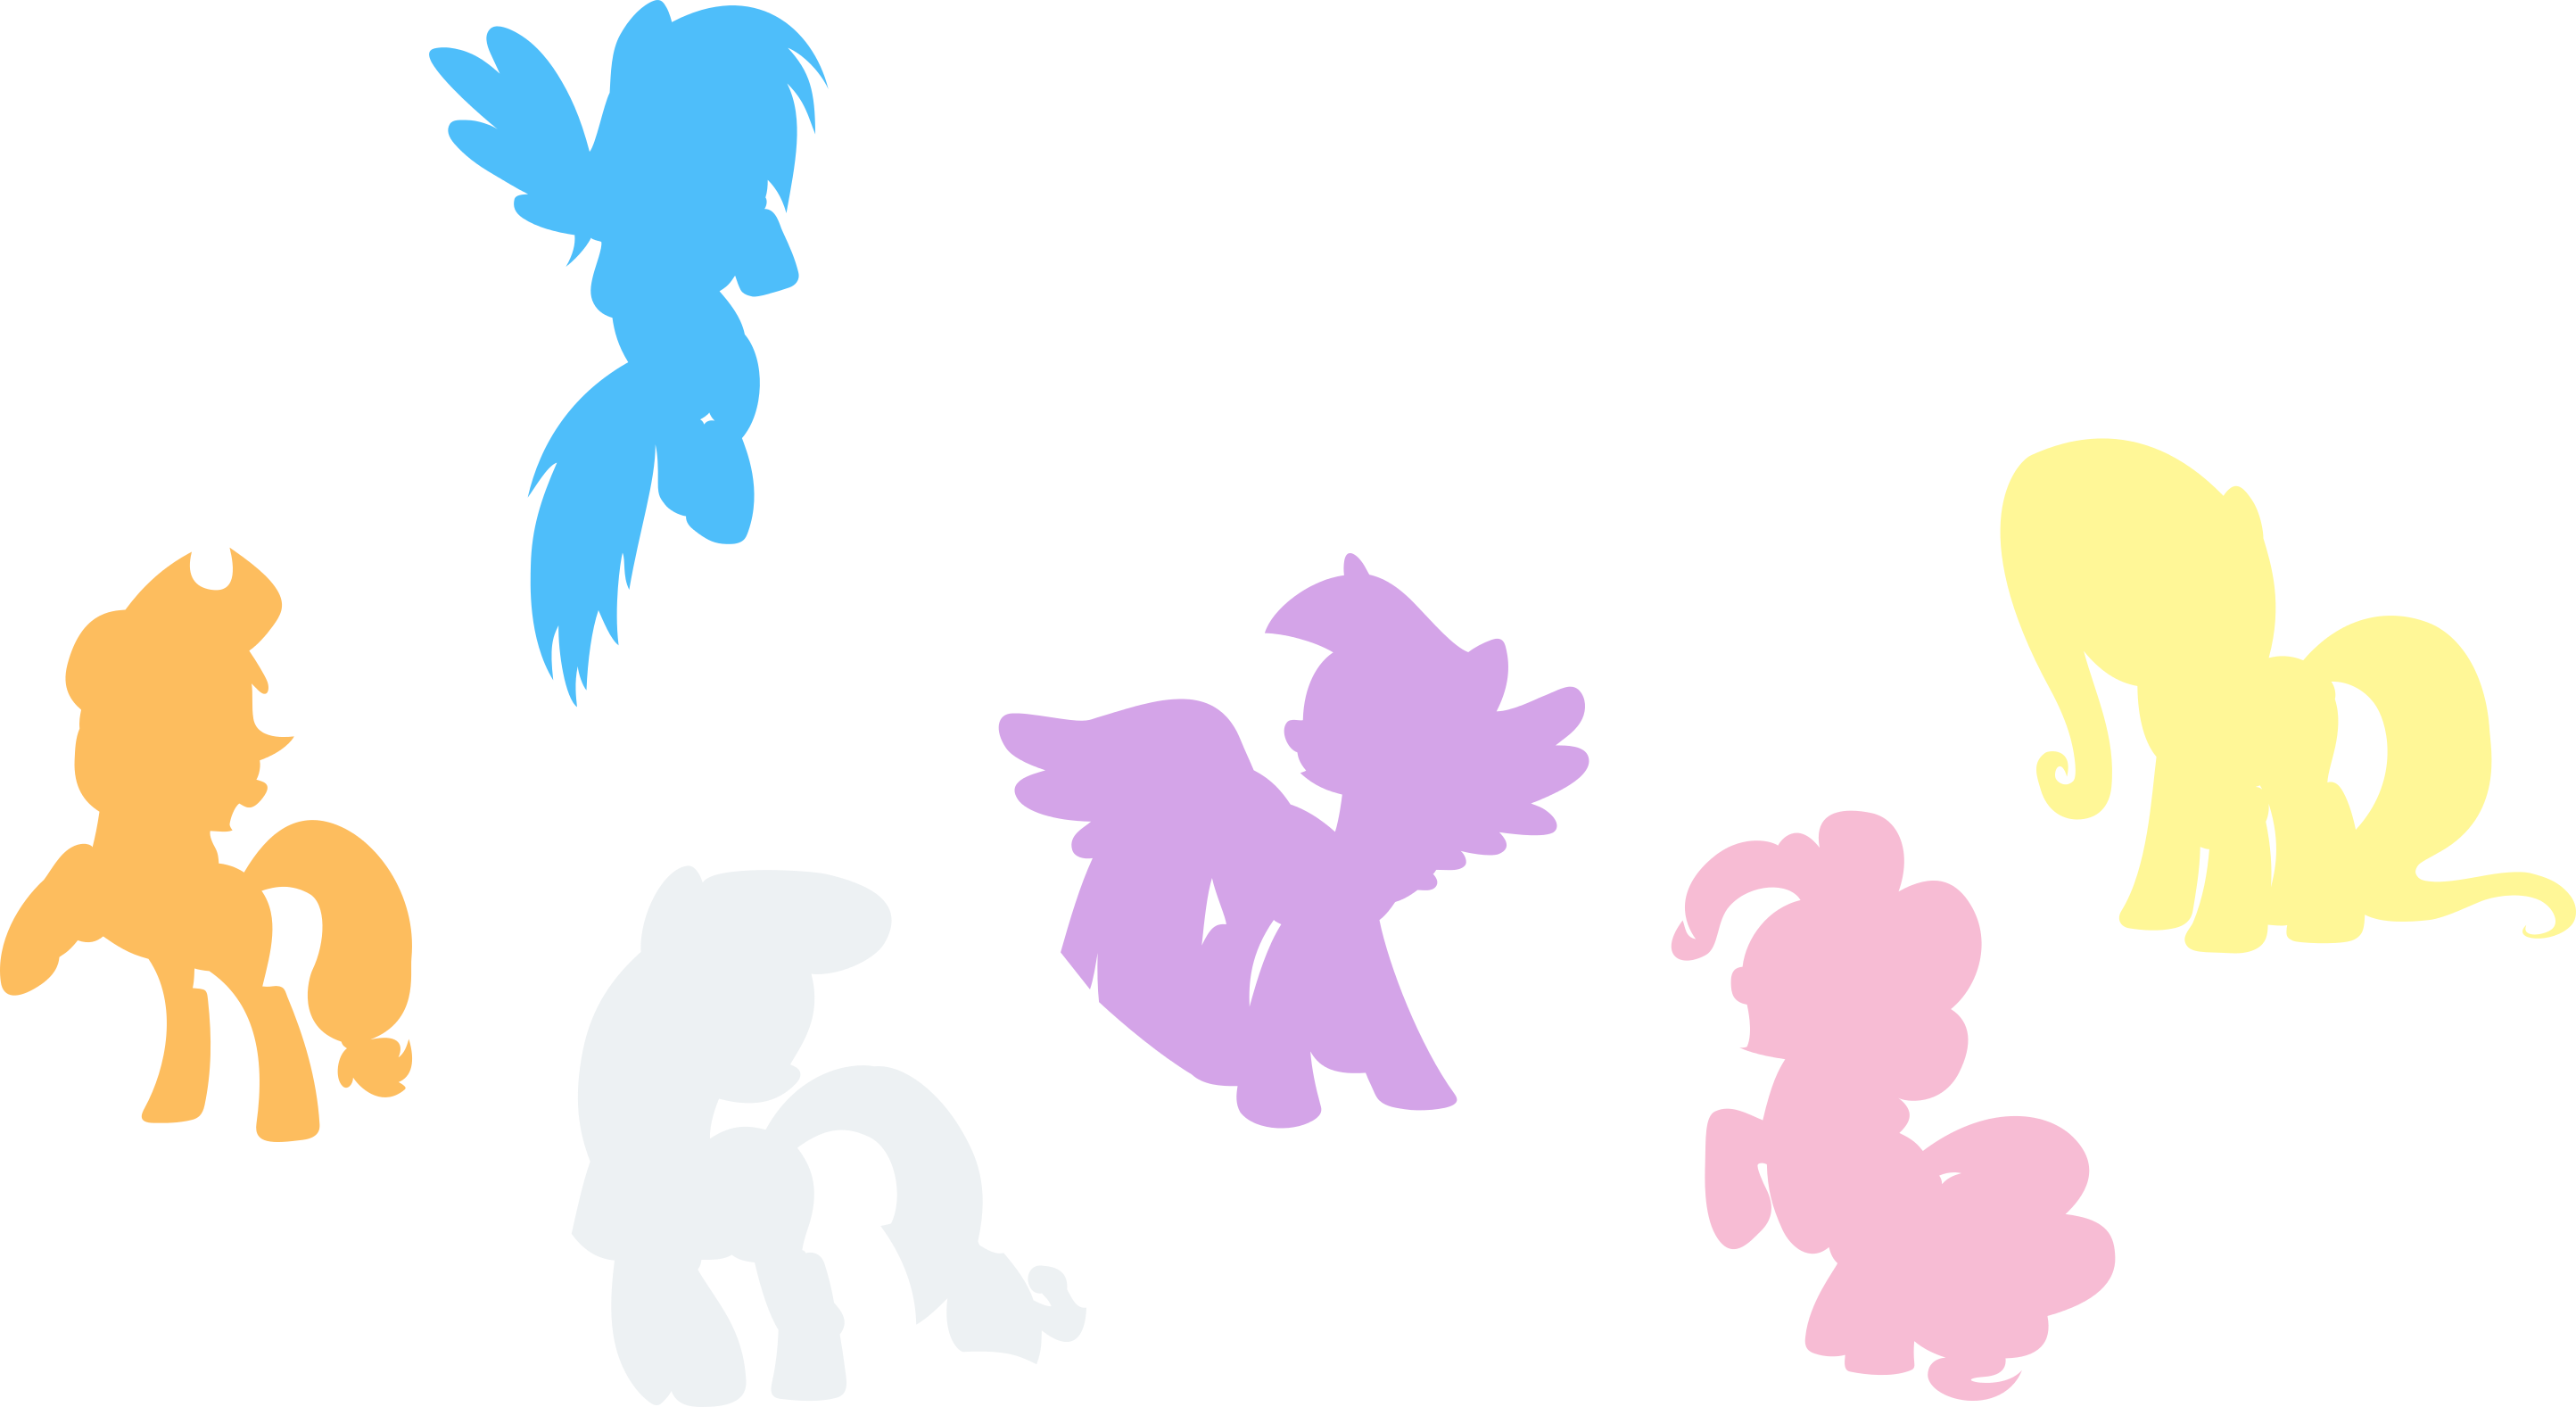 mane_6_silhouettes_by_esc54-d6ifru1.png